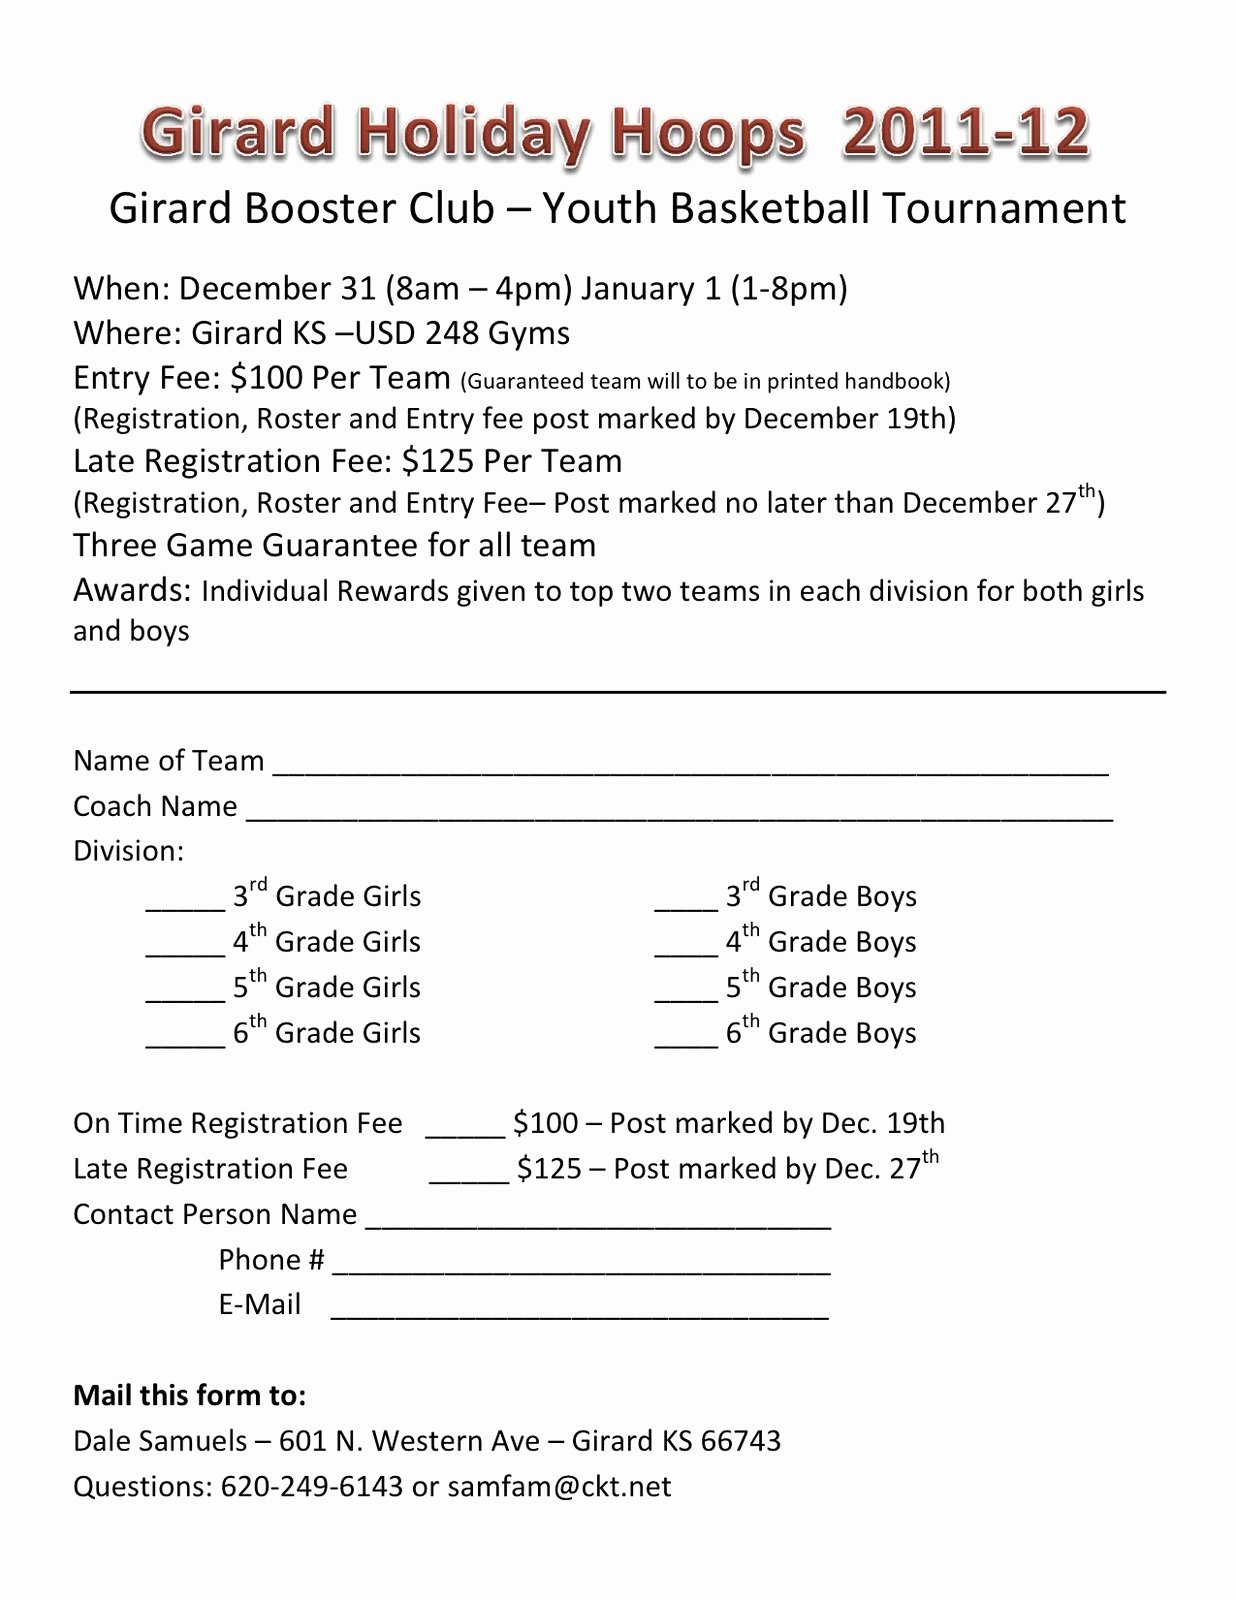 Basketball tournament Registration form Template Beautiful Ghs Booster Club Holiday Hoops